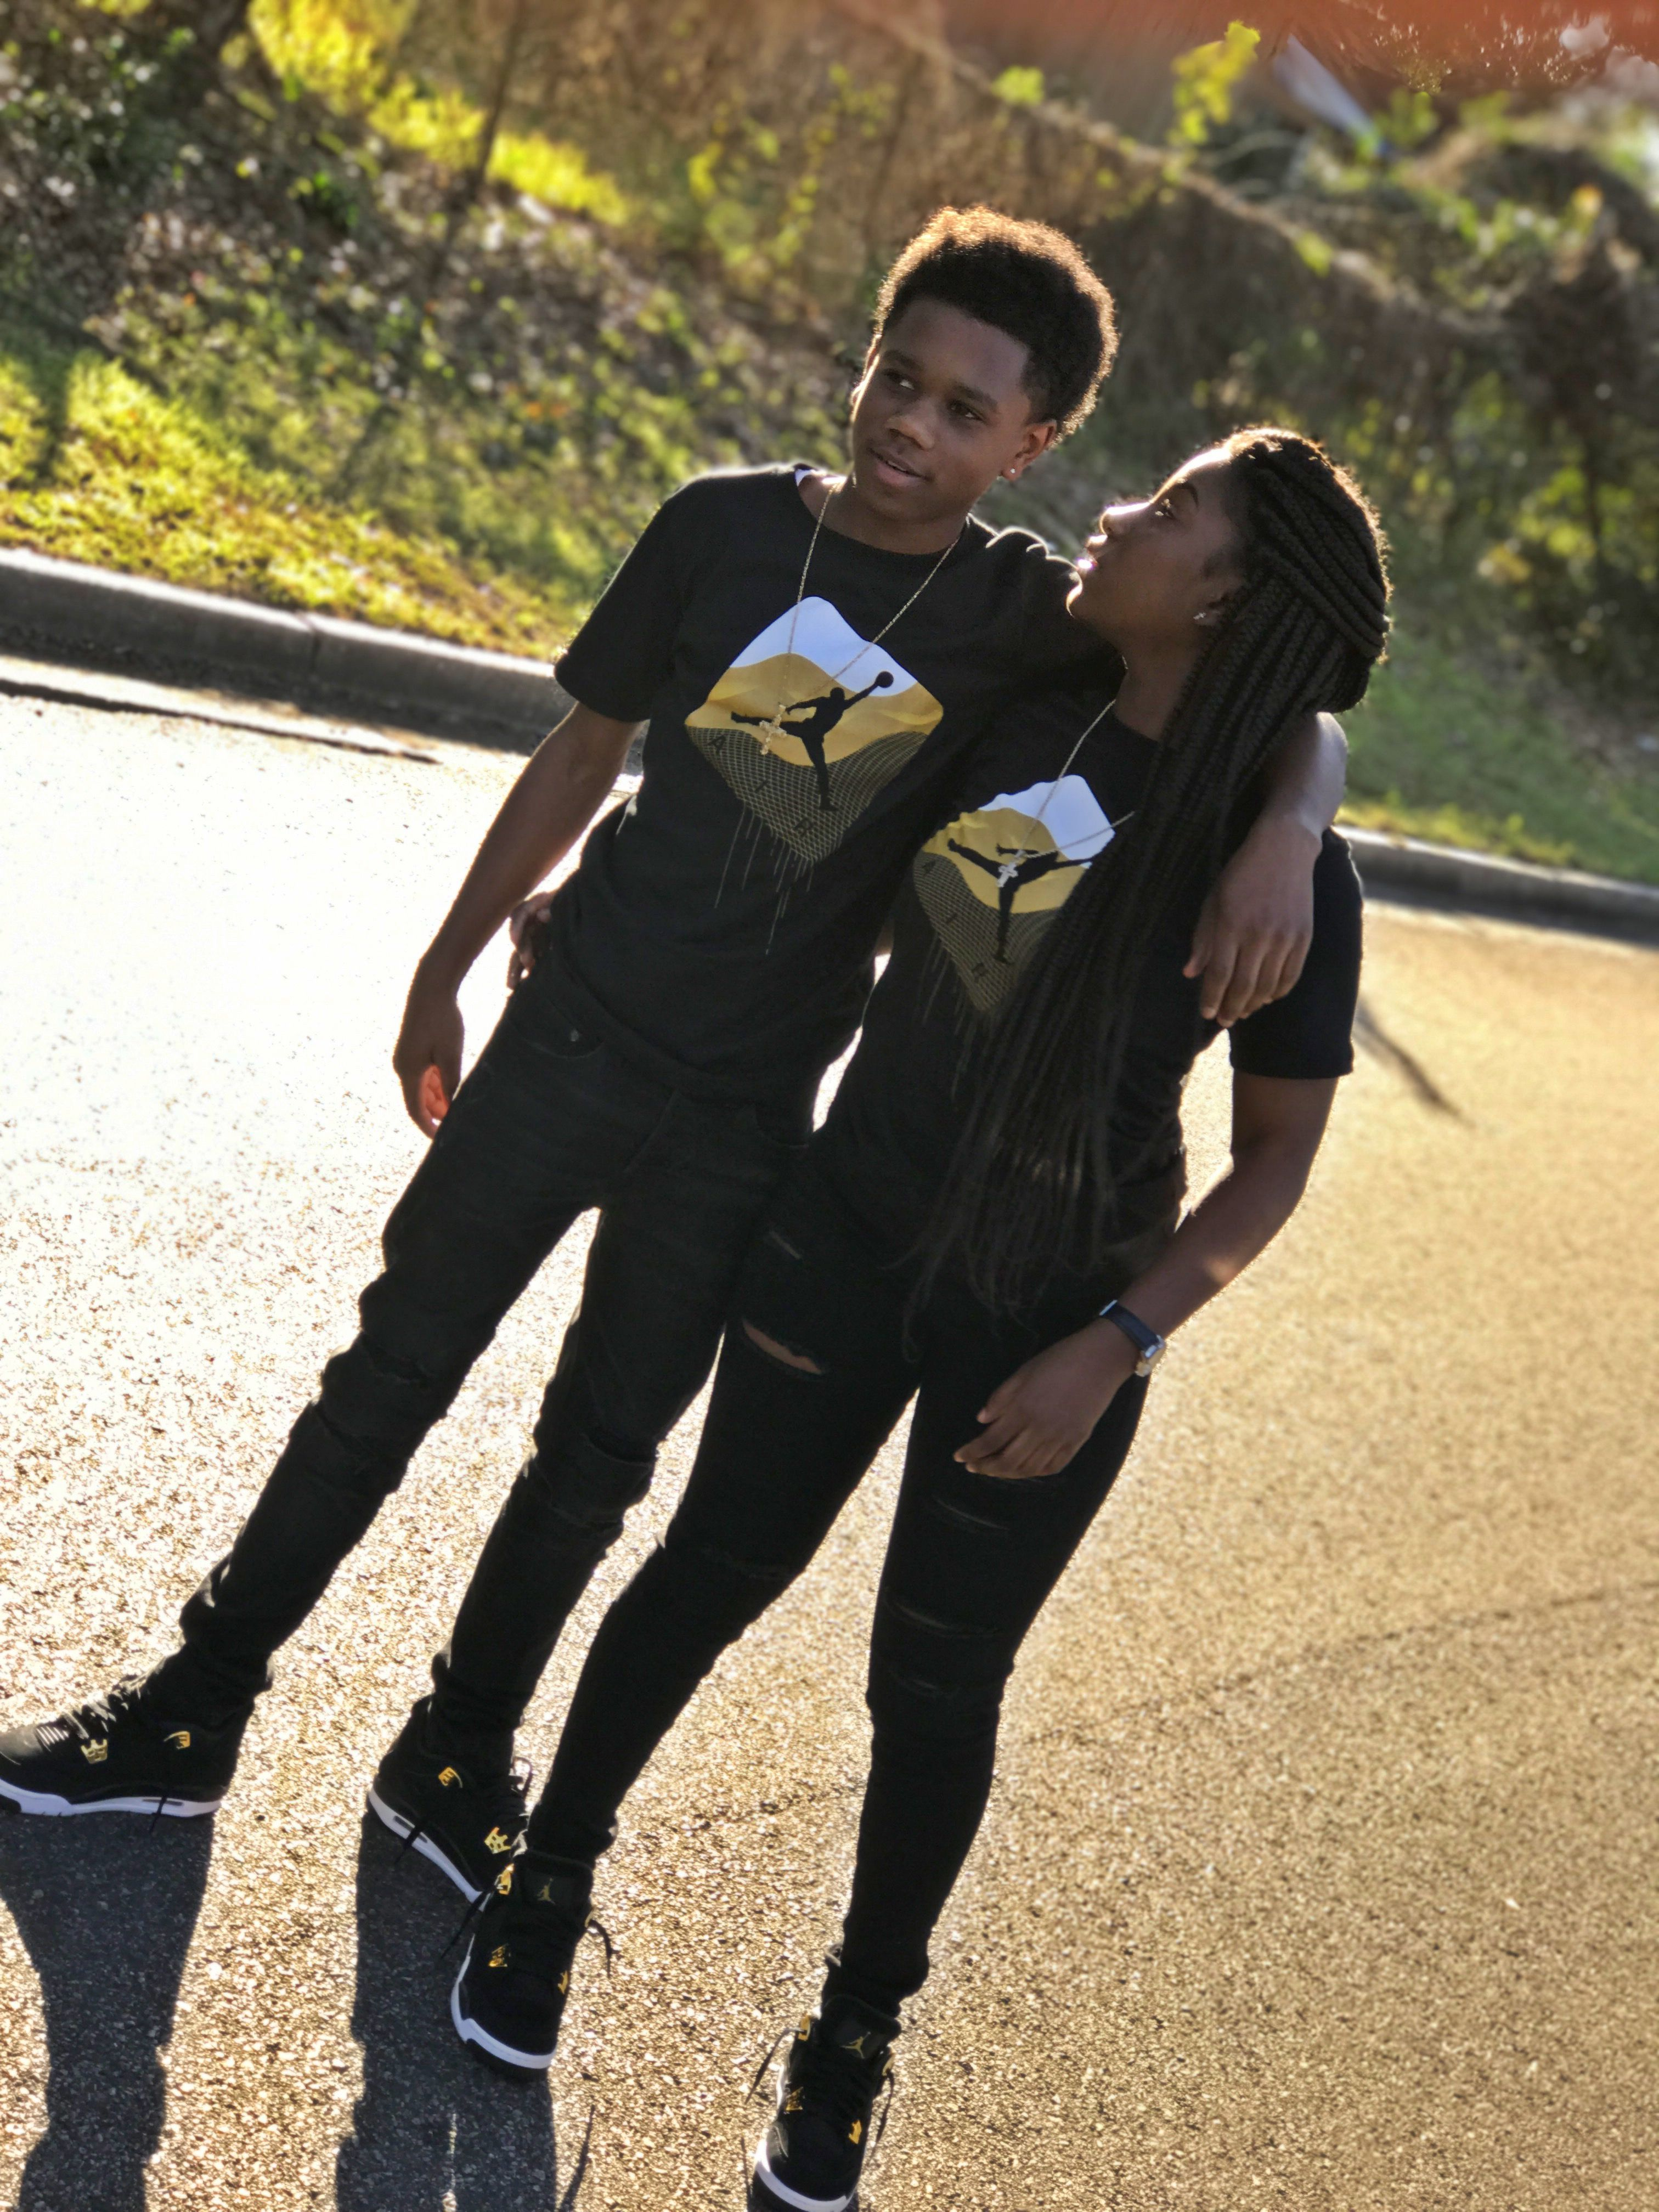 Matching couple I love them | Relationship goals ☺️ ...